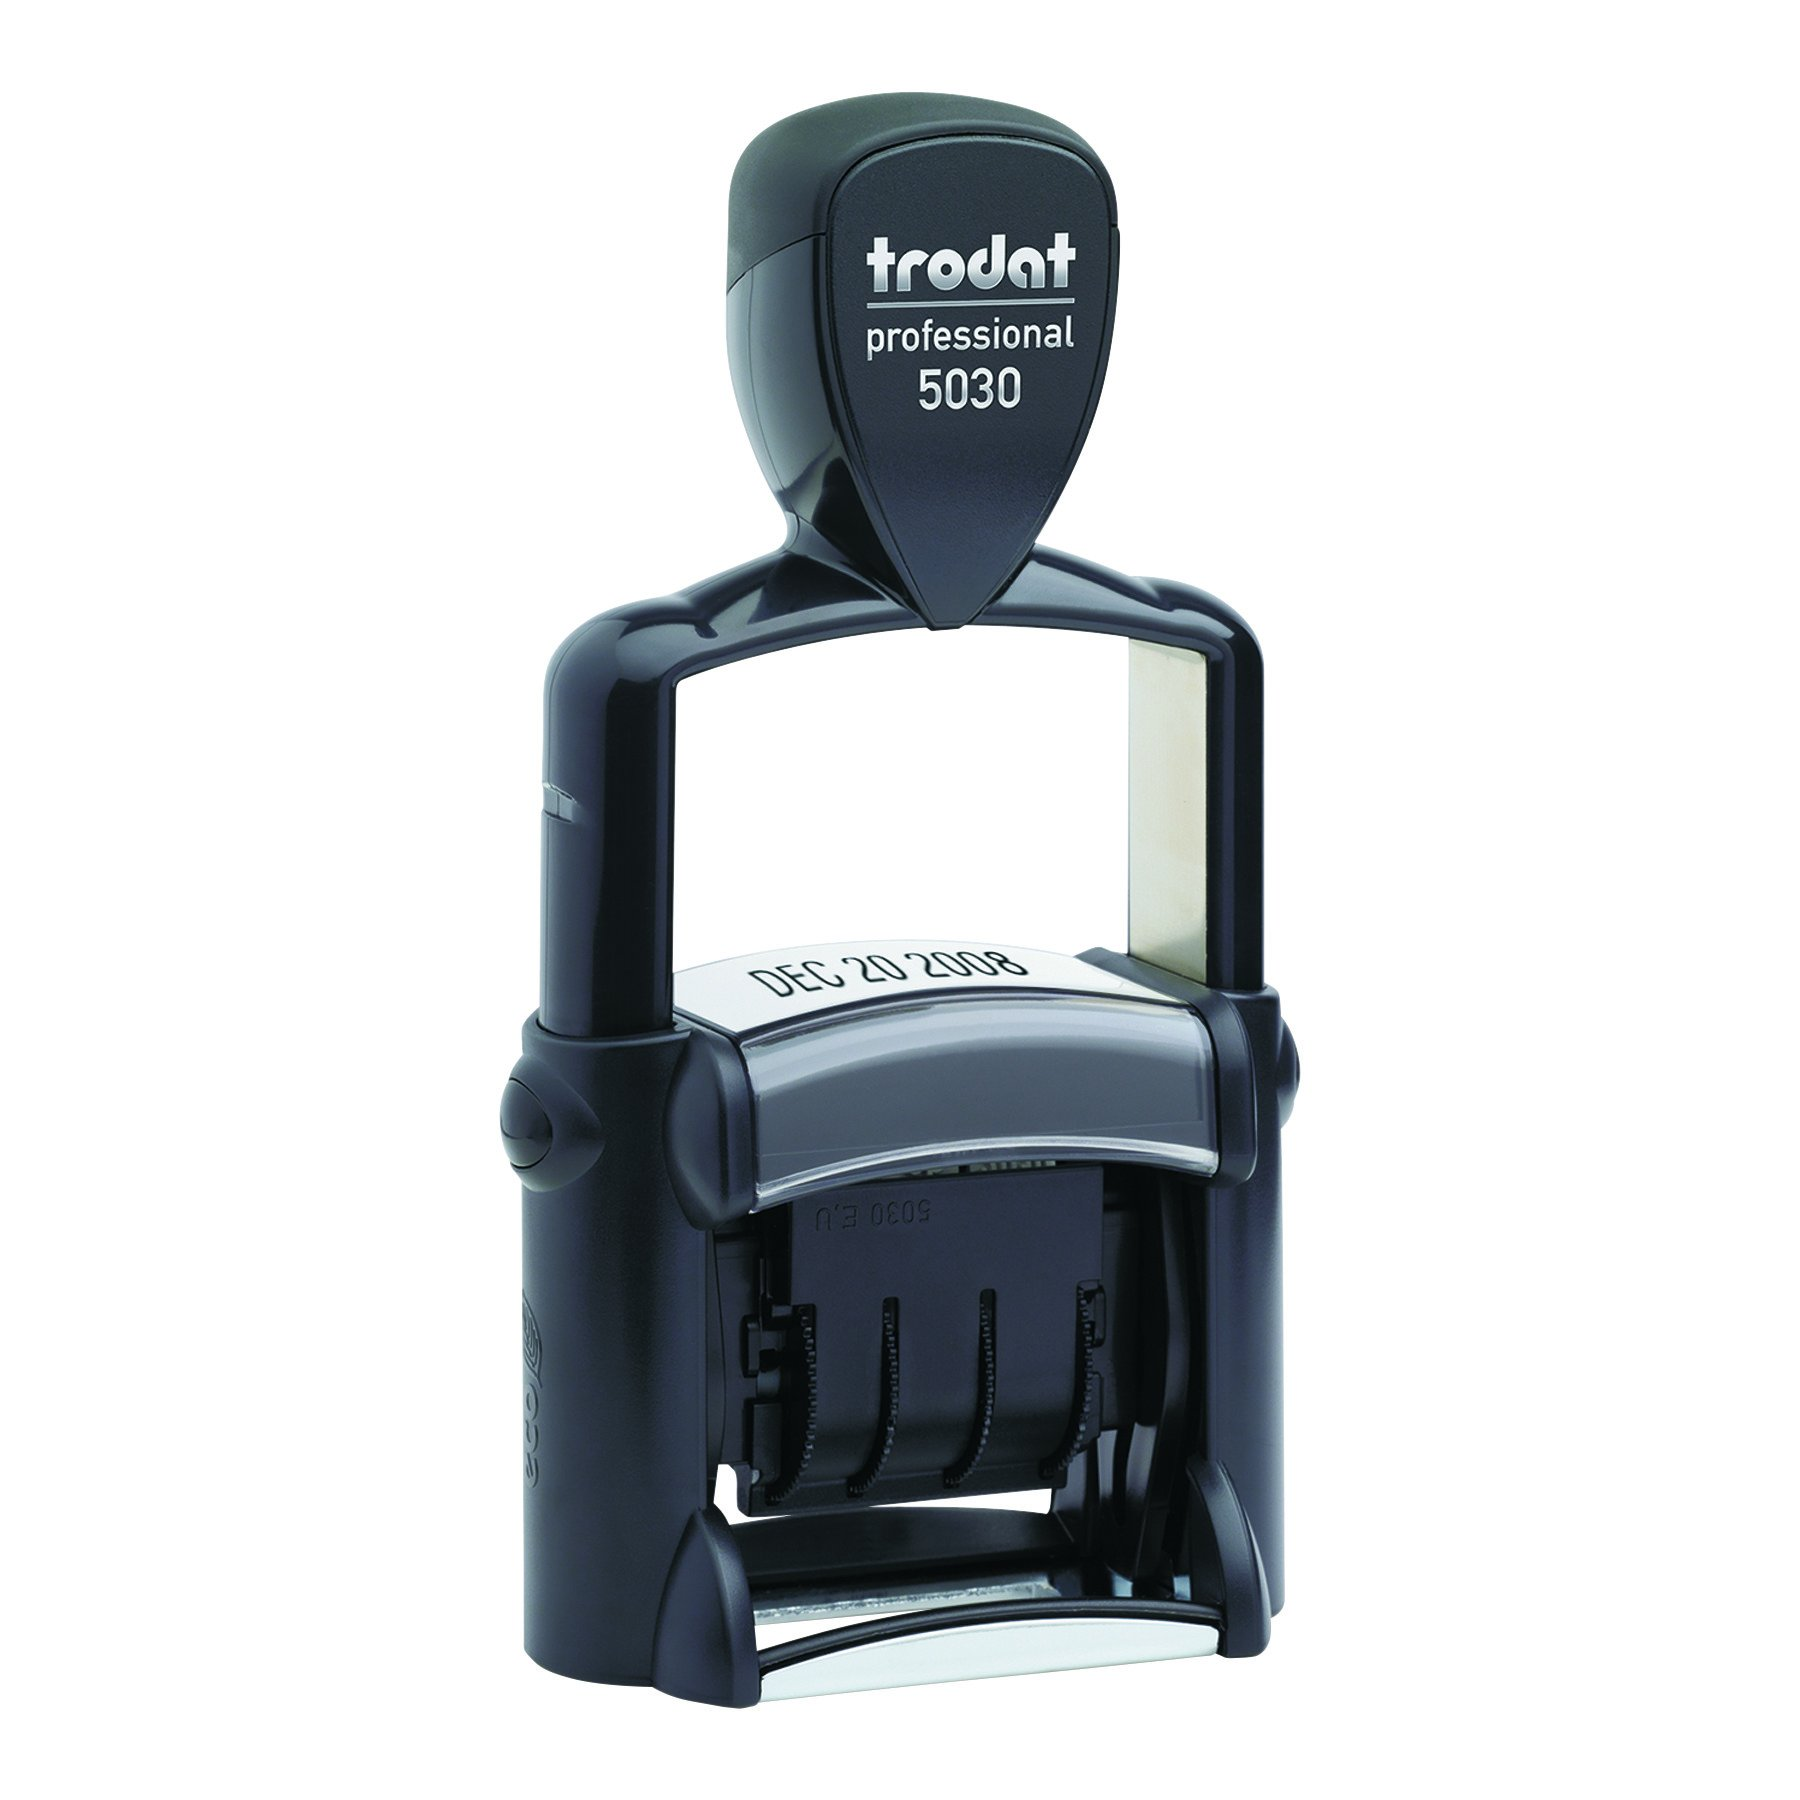 Trodat Professional Stamp, Dater, Self-Inking, Impression Size: 1 5/8 x 3/8 Inches, Black (T5030)